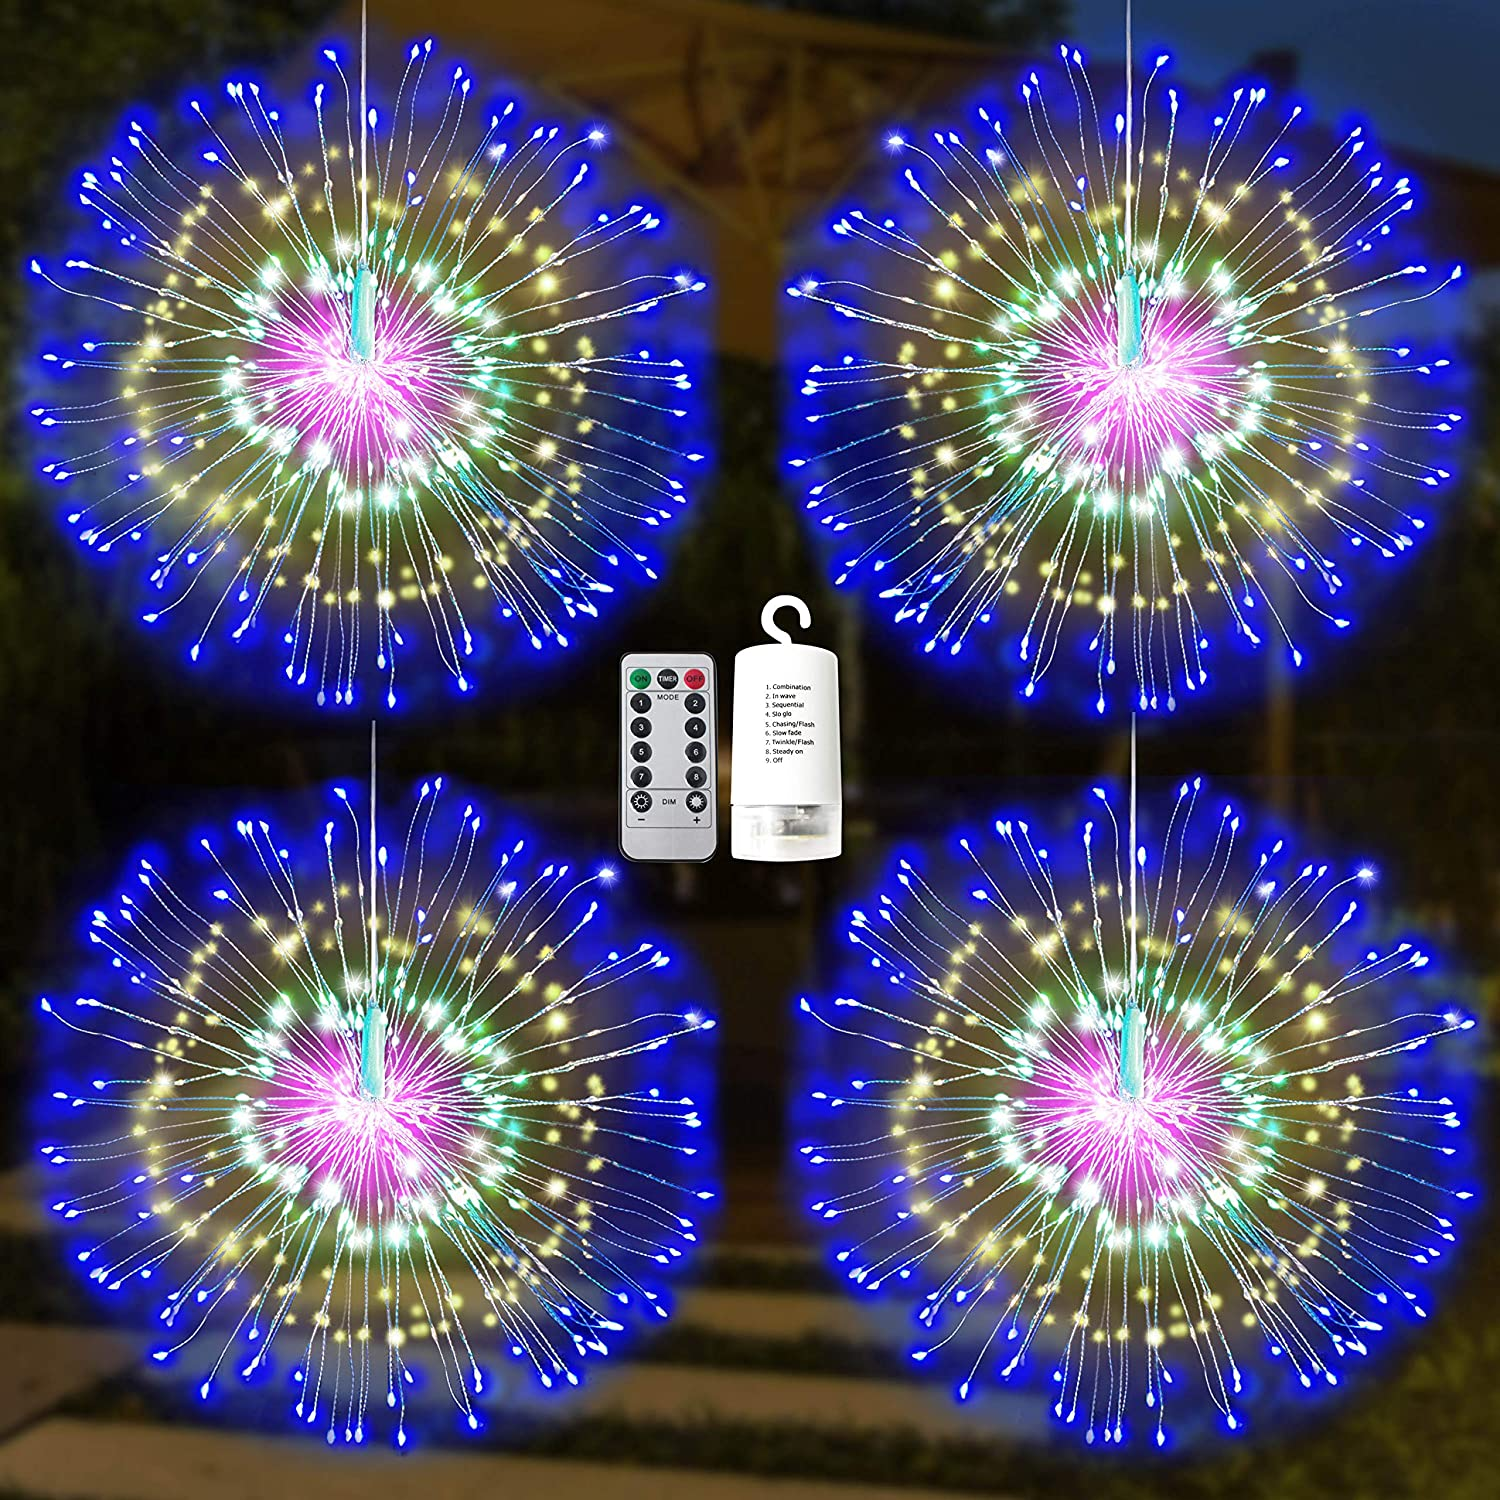 Joiedomi 4 Pack of Firework Copper Wire Hanging 200 LED Starburst Lights Waterproof for Christmas Home Party, Wedding Garden, Xmas Patio Bedroom Décor, Indoor Outdoor Decorations